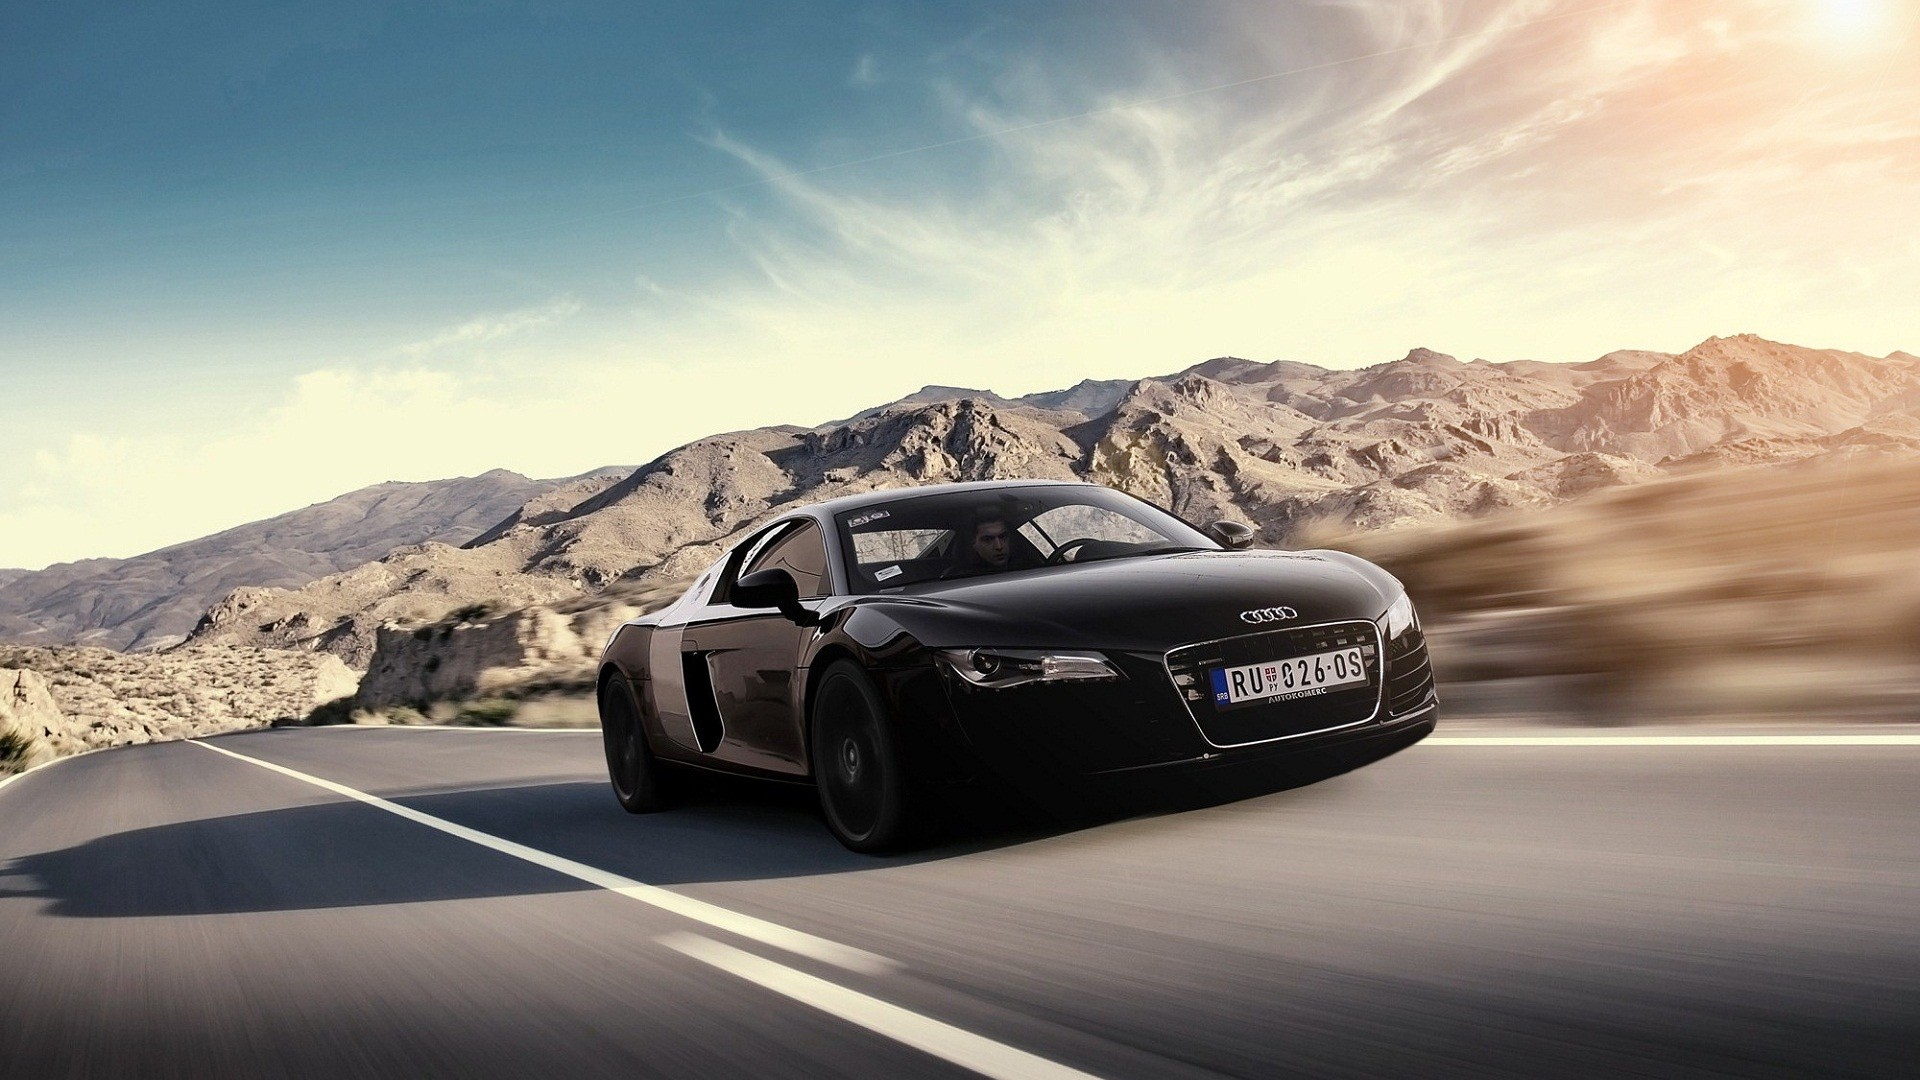 43 audi wallpapers backgrounds in hd for free download - Audi car wallpaper 2018 ...